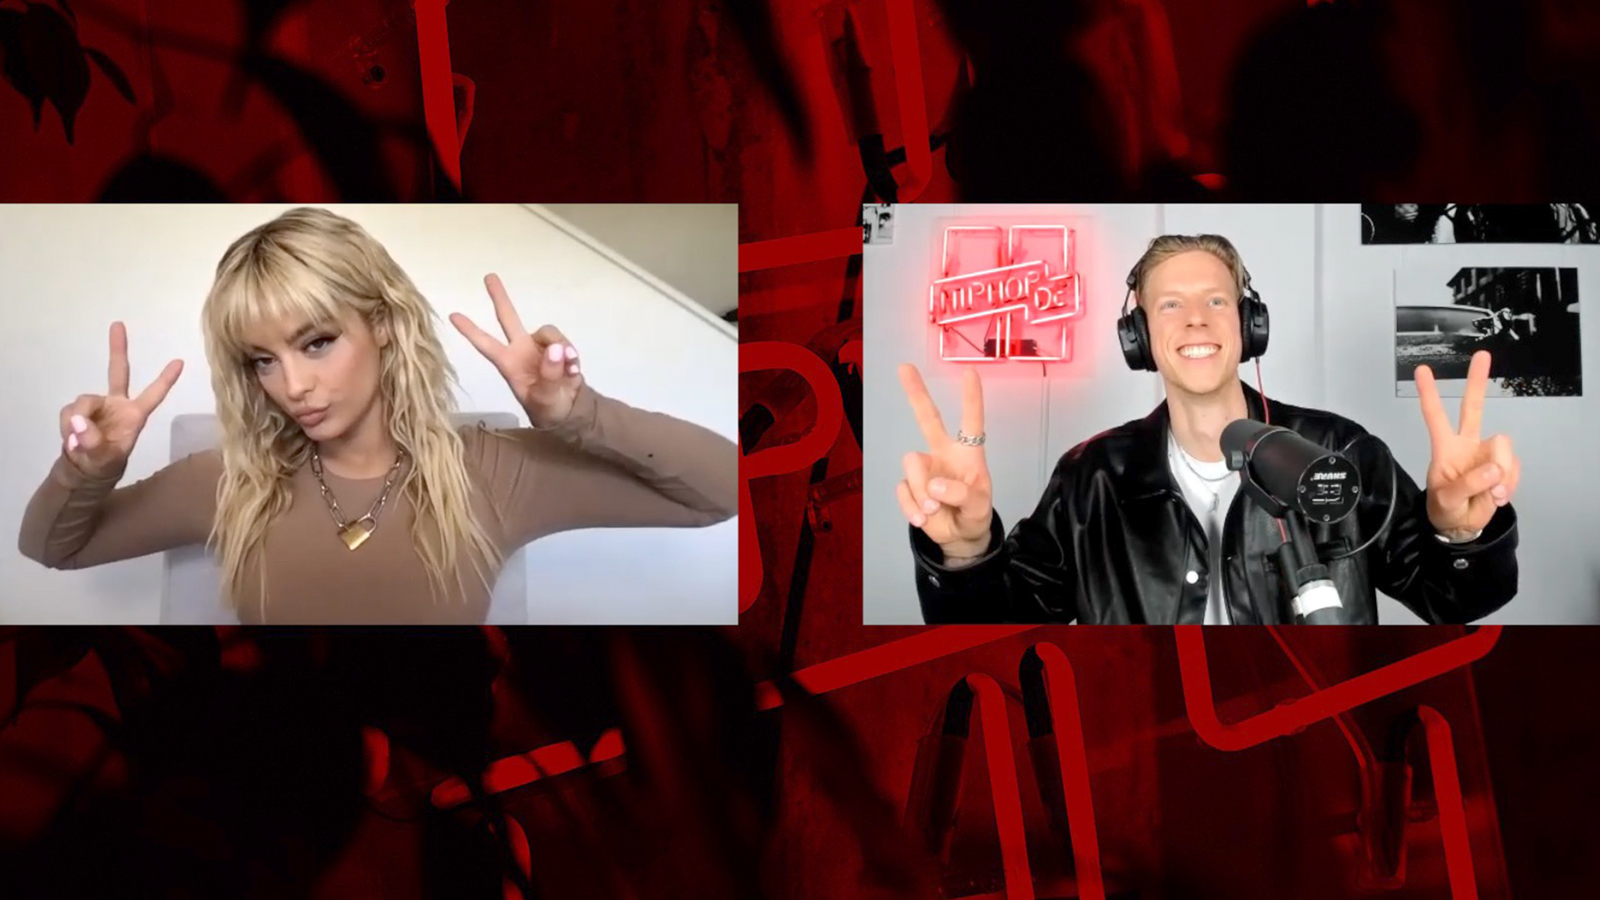 """Bebe Rexha über """"Better Mistakes """", Eminems """"Monster"""", Ty Dolla $ign & G-Eazy – Interview mit Beace"""